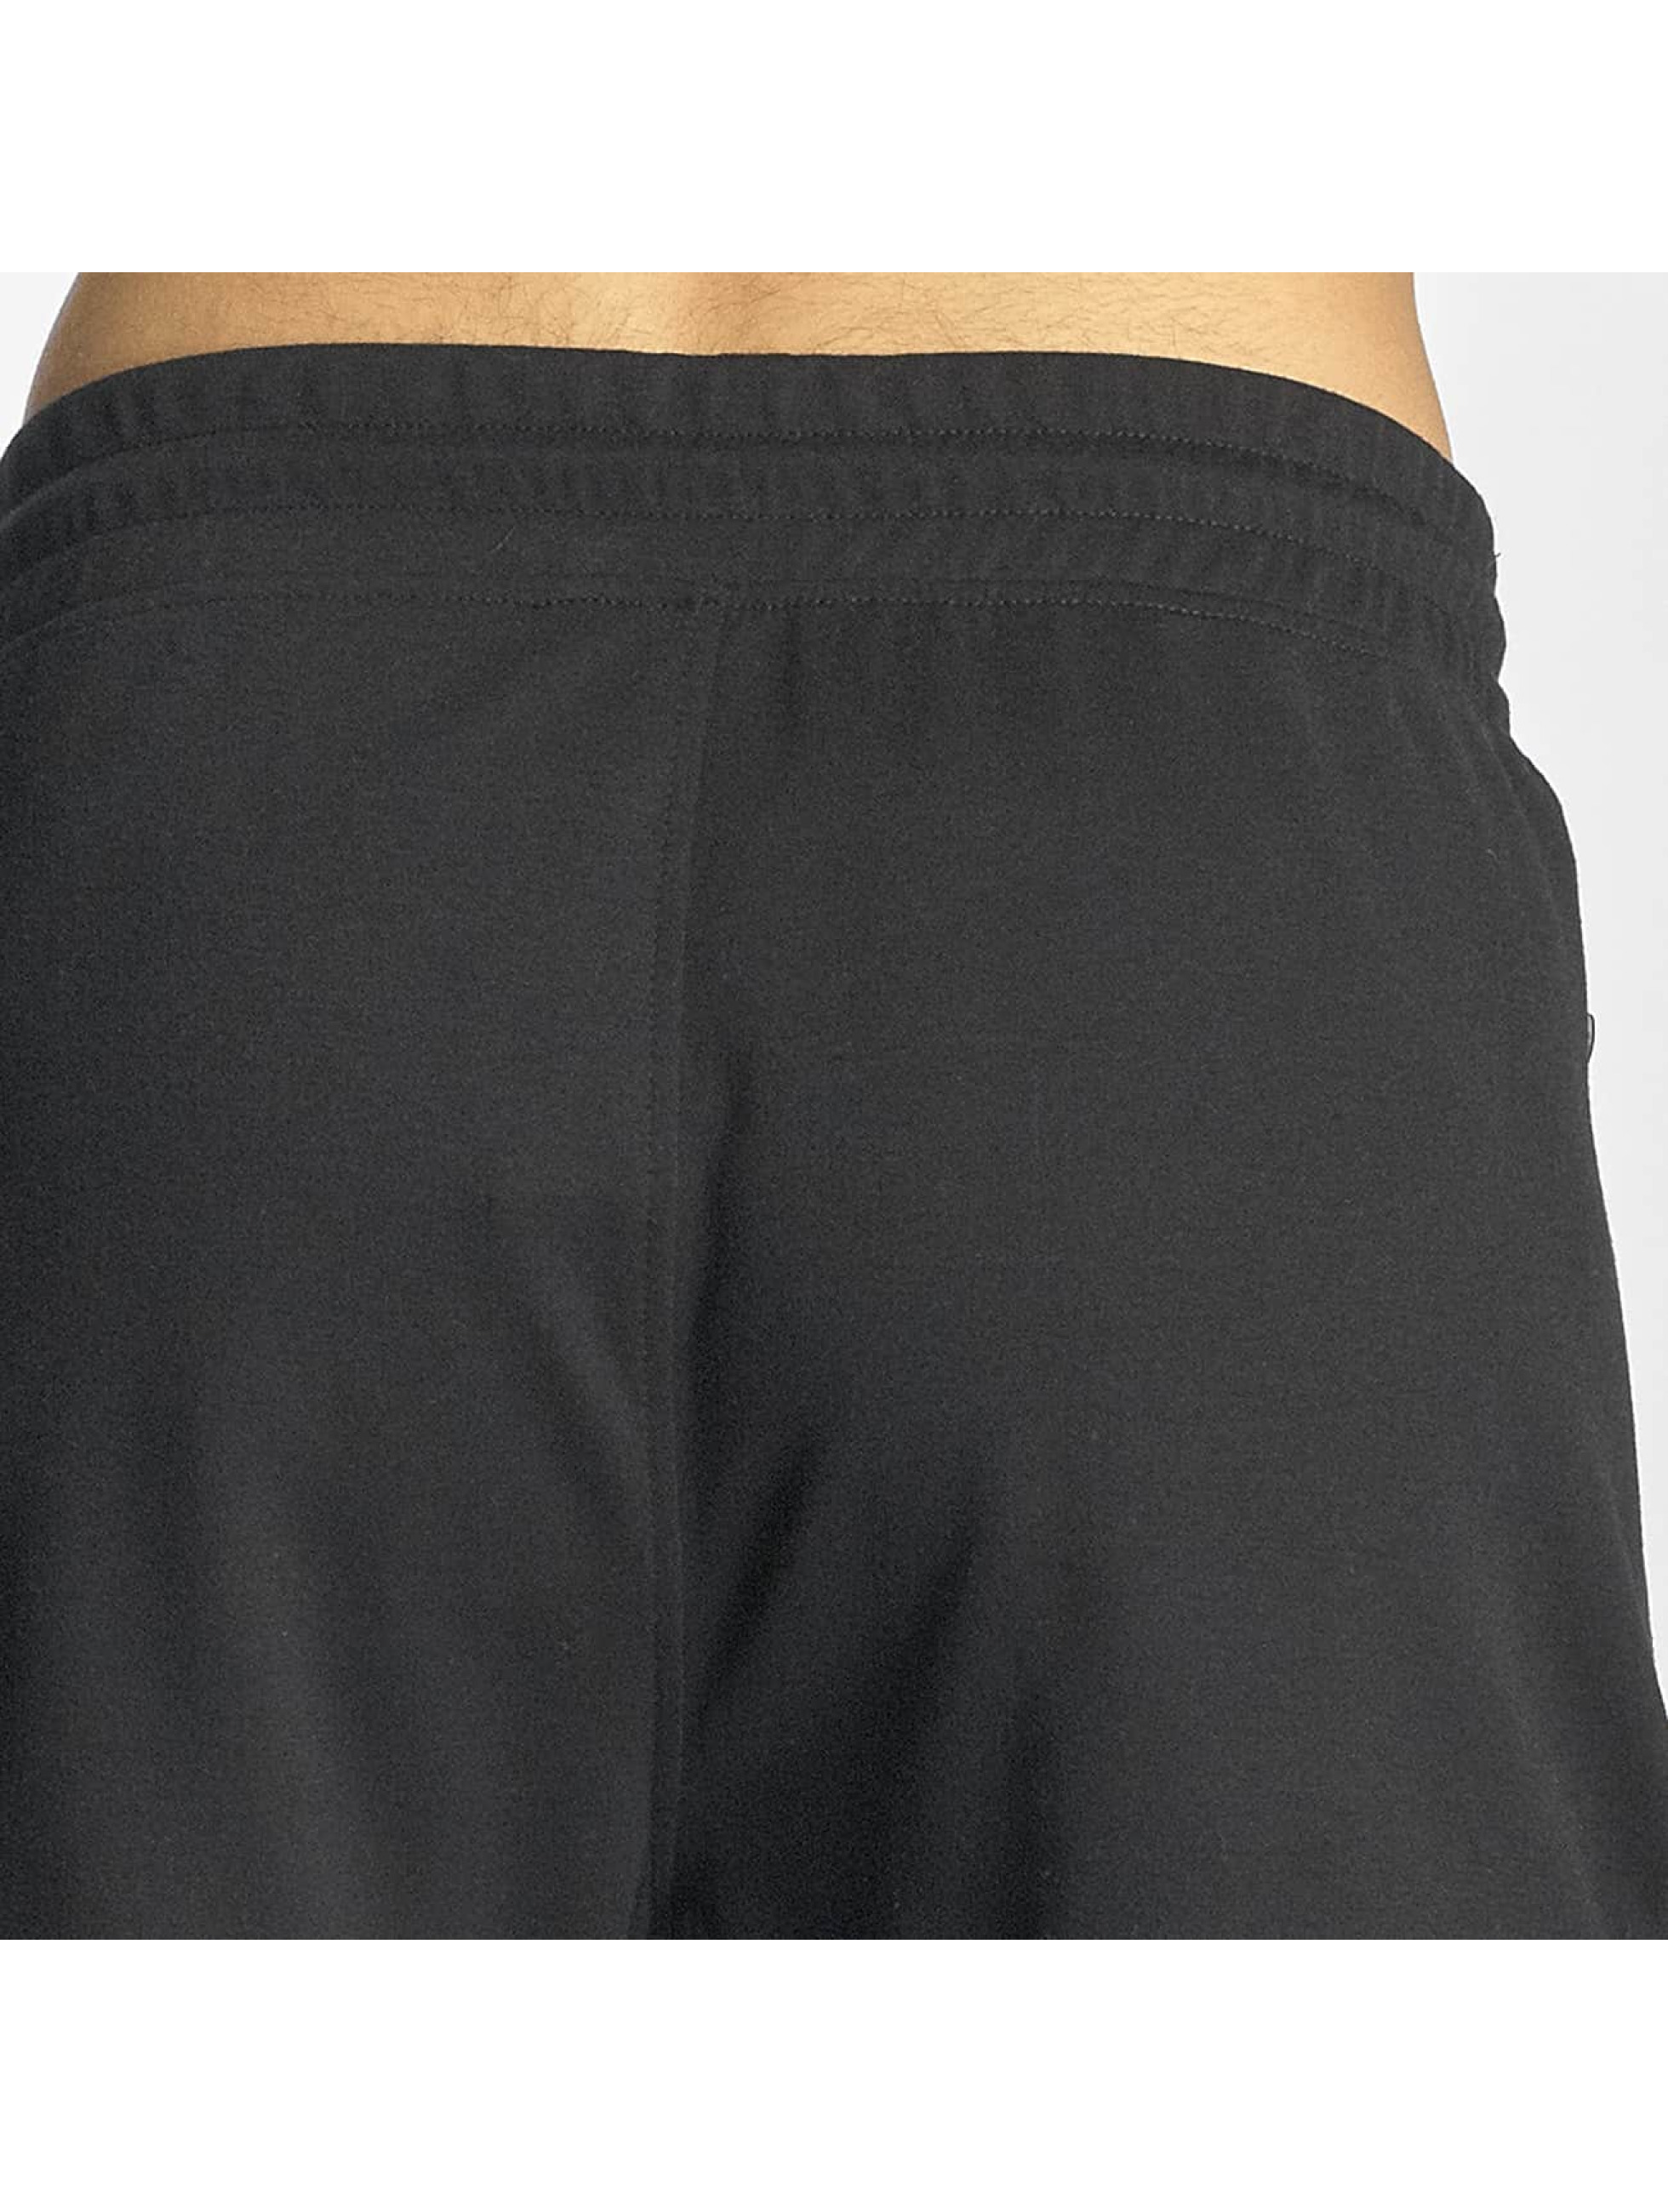 Jack & Jones Short jcoWill black